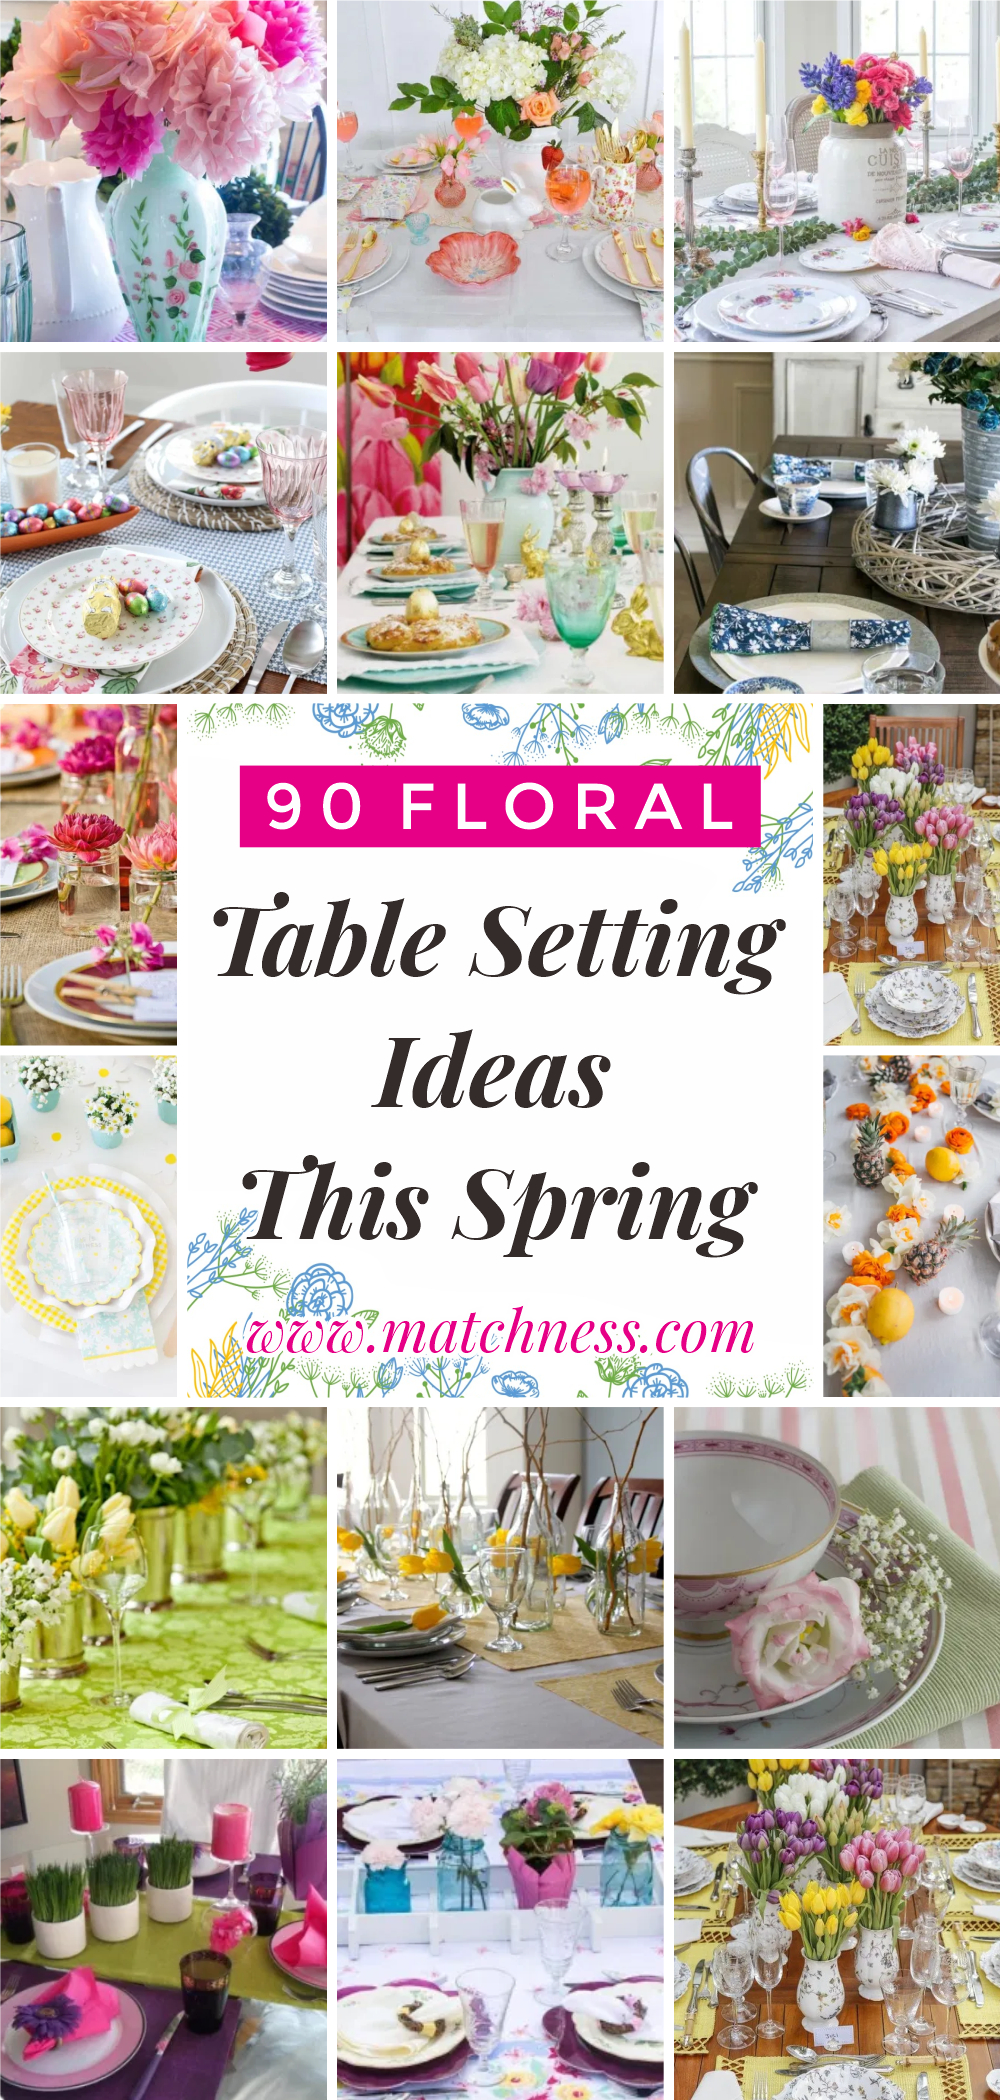 90 floral table setting ideas this spring1